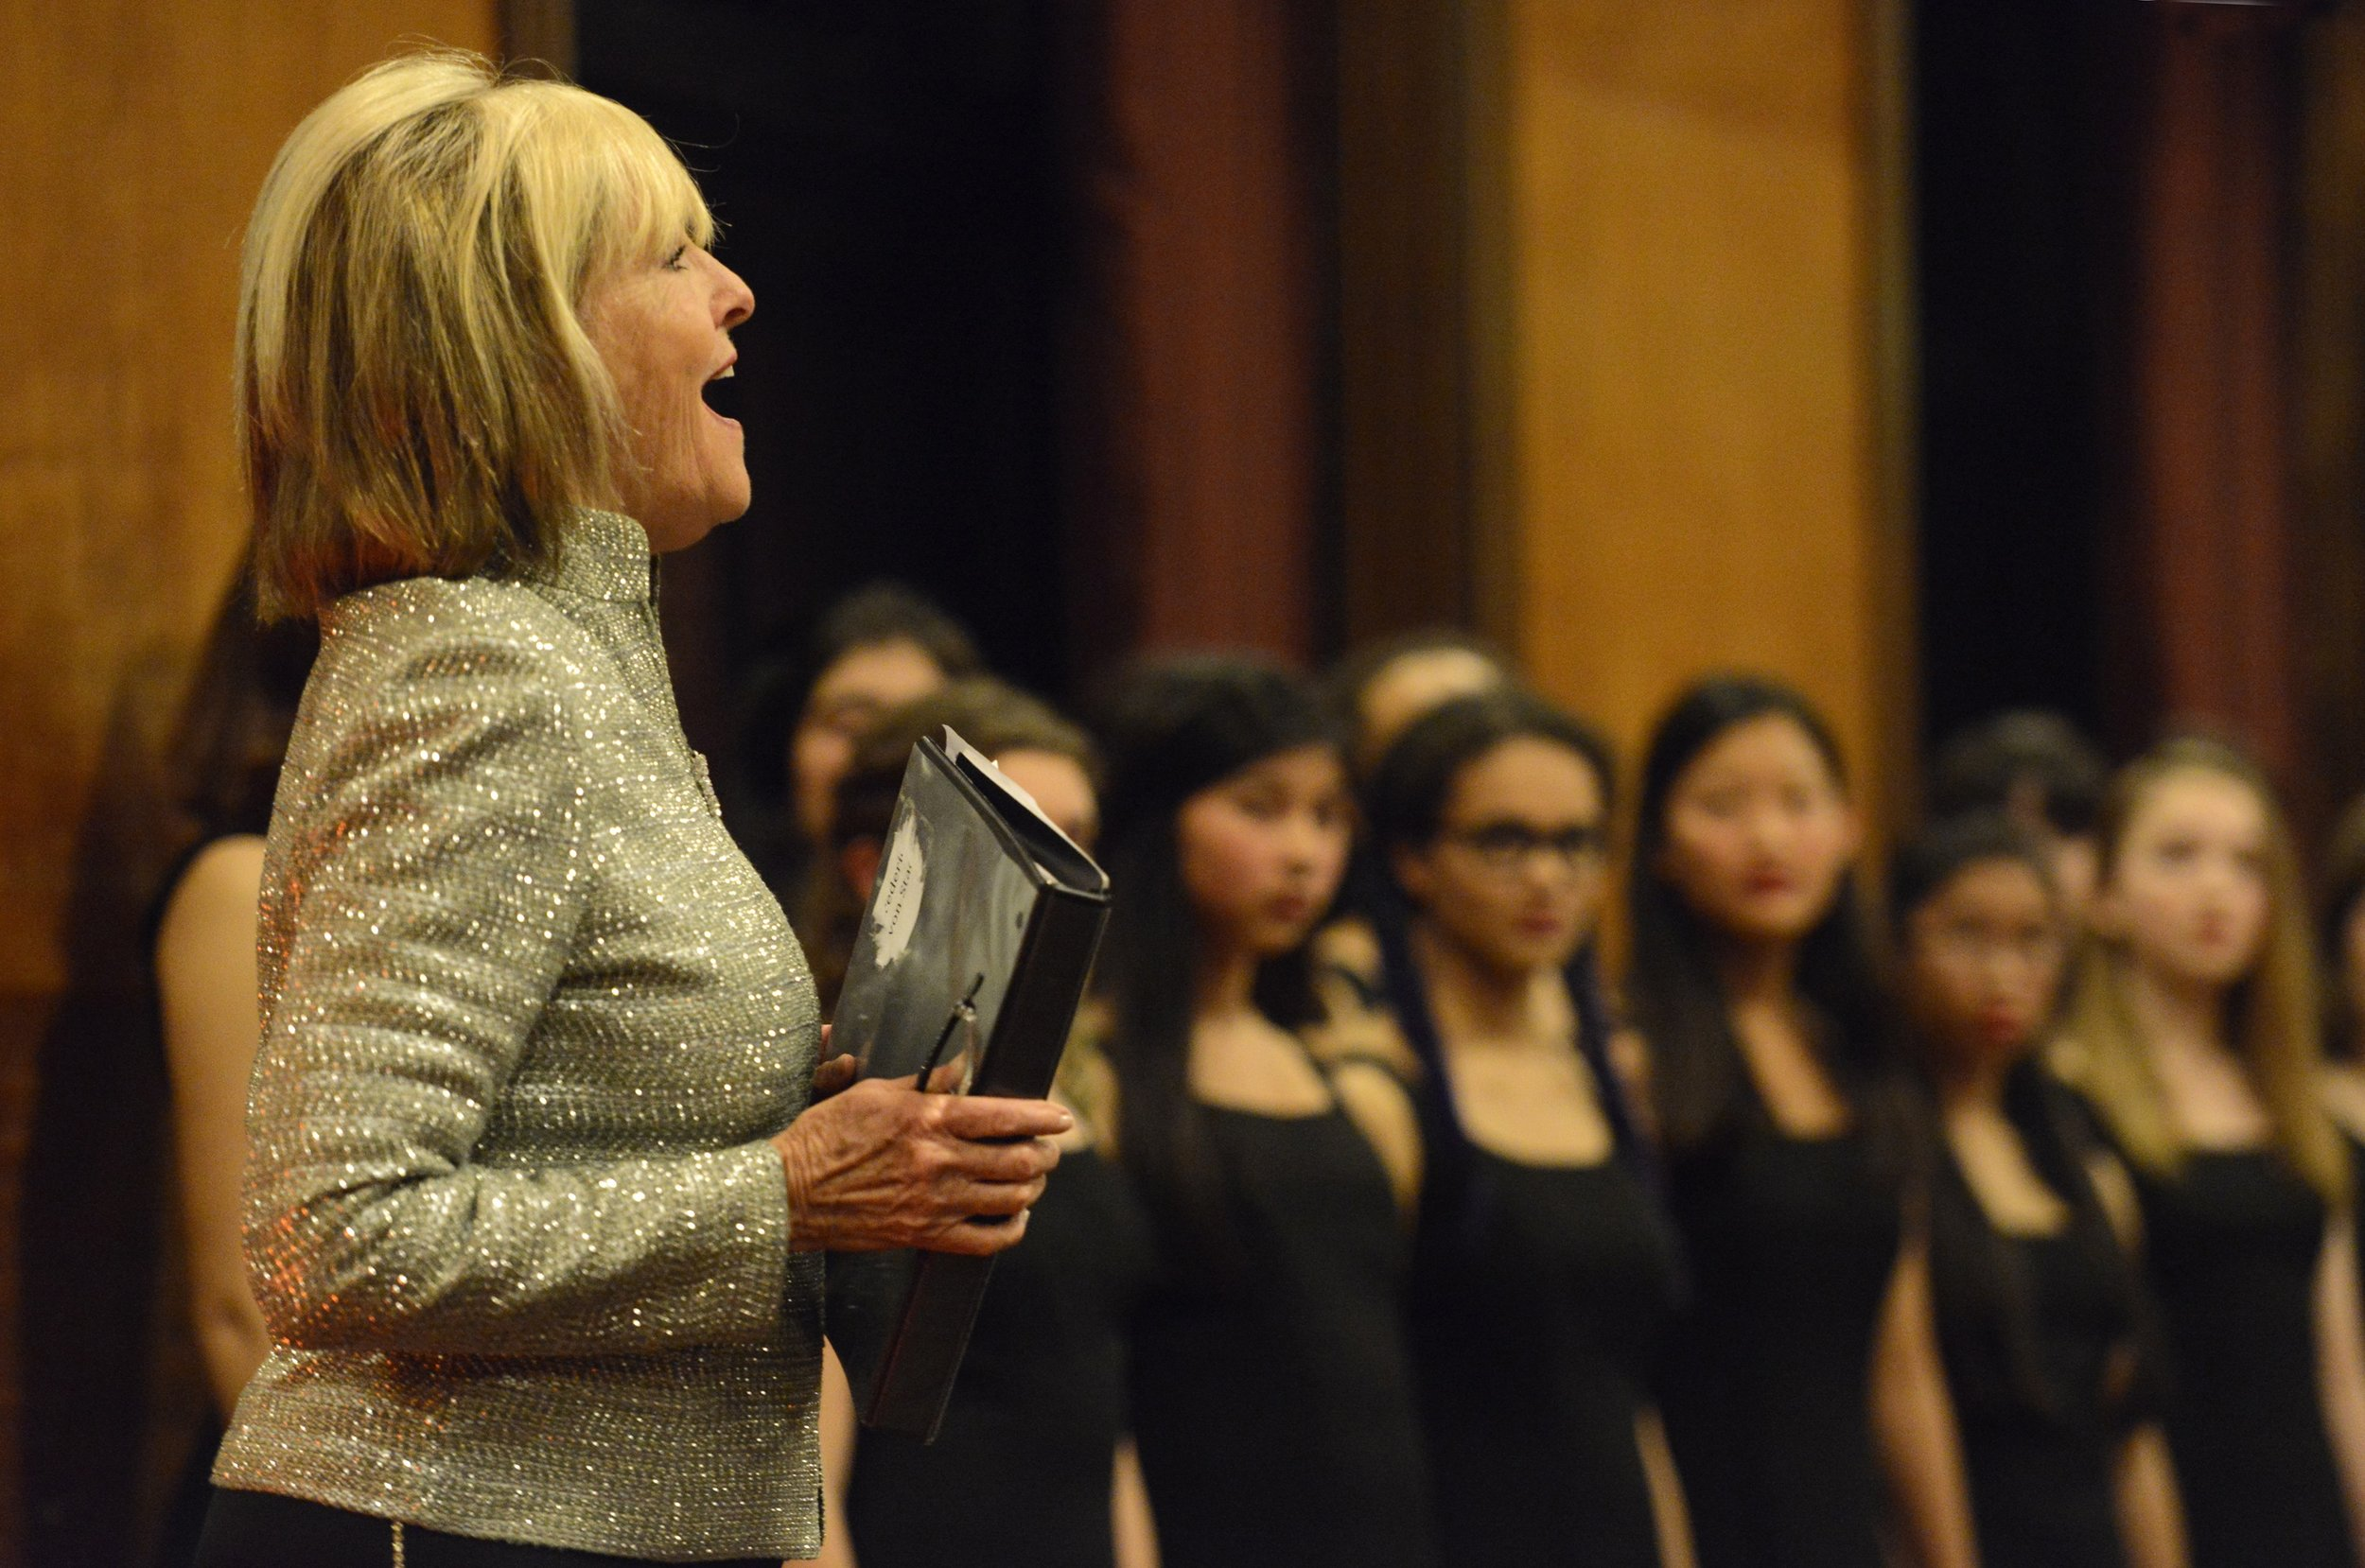 Fredrica von Stade, mezzo-soprano, performs with the SF Girls Chorus March 18, 2016 at the organization's annual fundraiser. Photograph by Dana Davis.